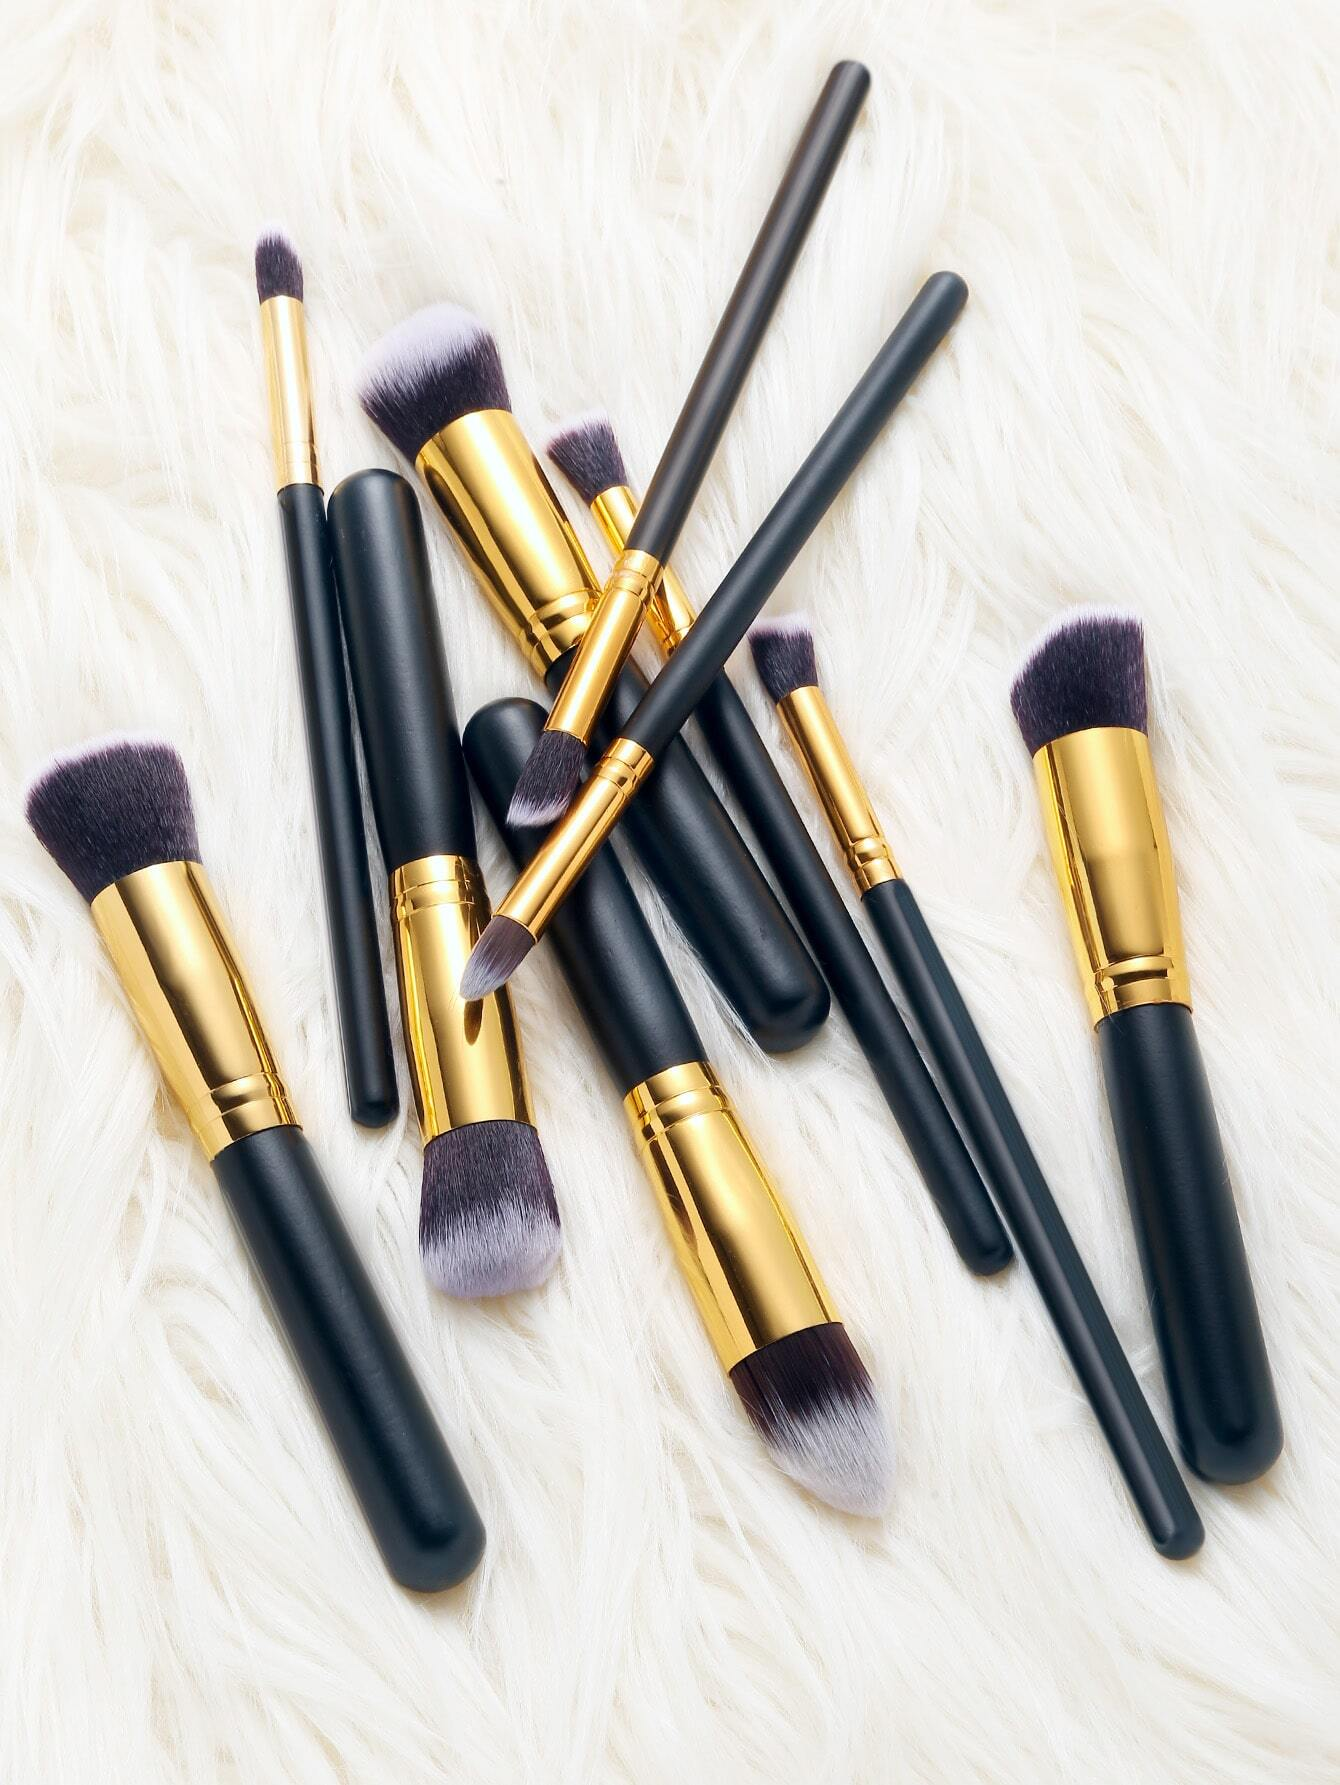 Image of 10Pcs Black Cosmetic Makeup Brush Set